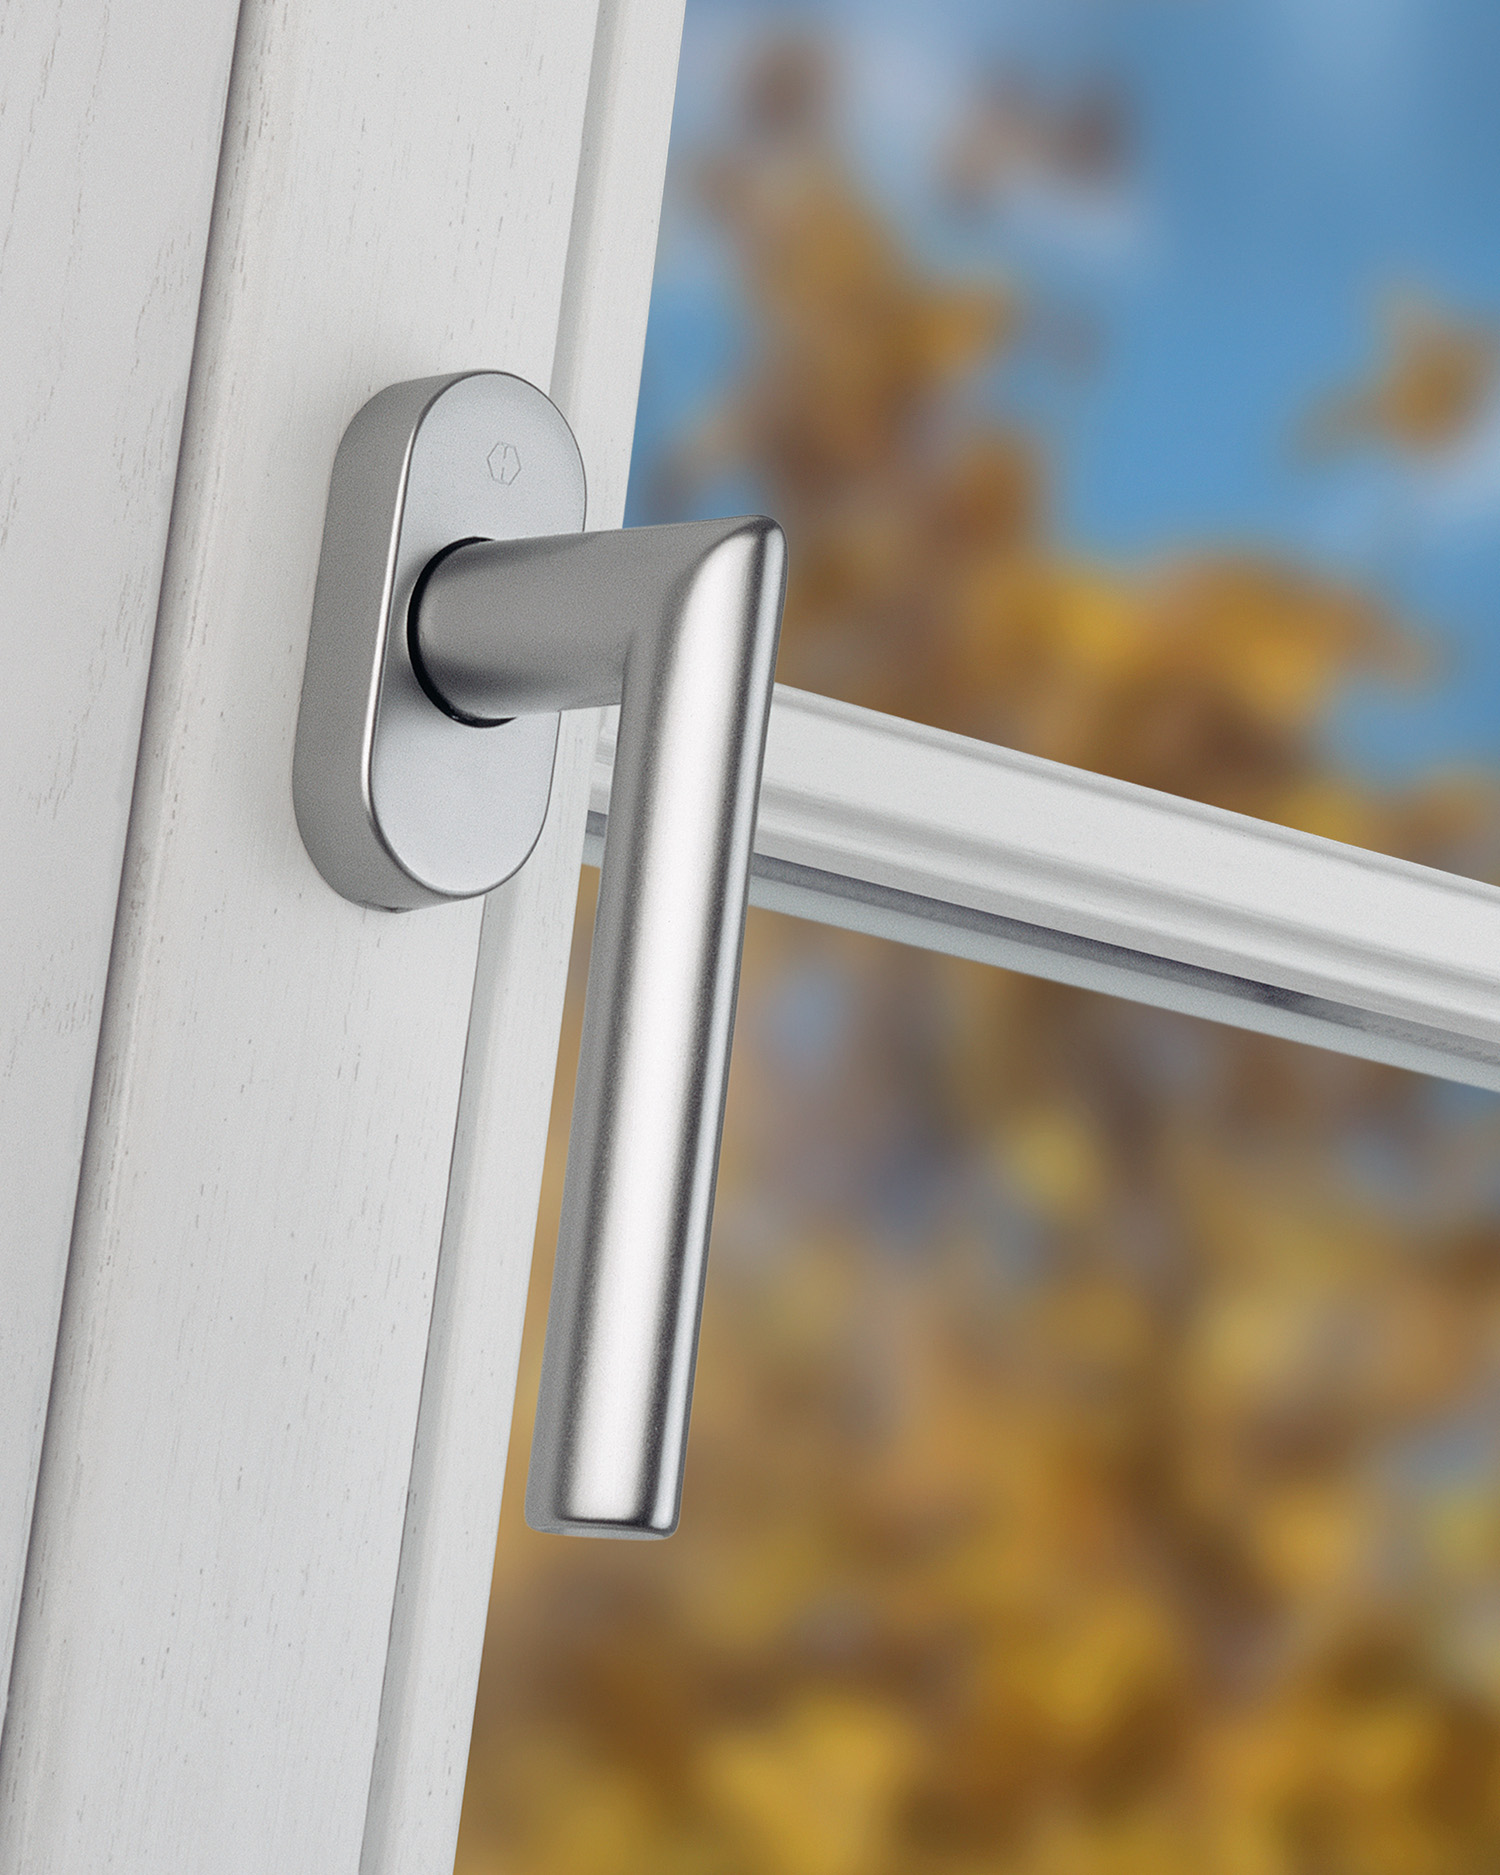 HOPPE realistically tests door and window handles in situ